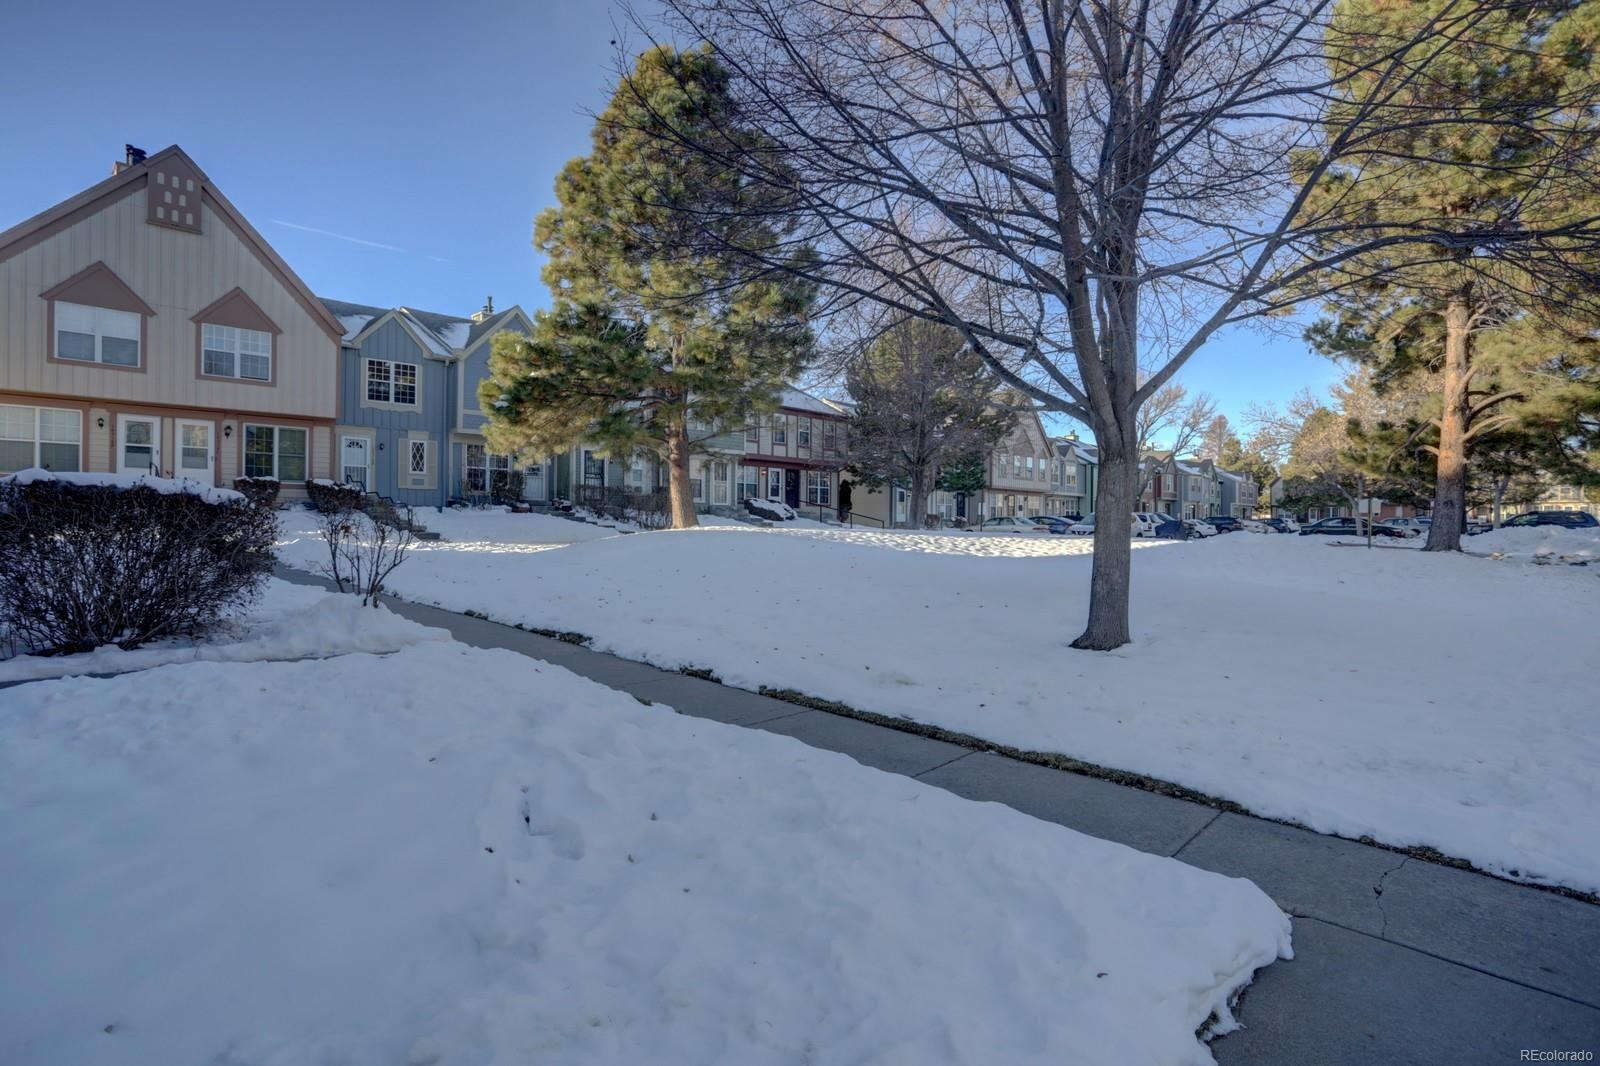 MLS# 3517669 - 3 - 14324 E Hawaii Circle #F, Aurora, CO 80012